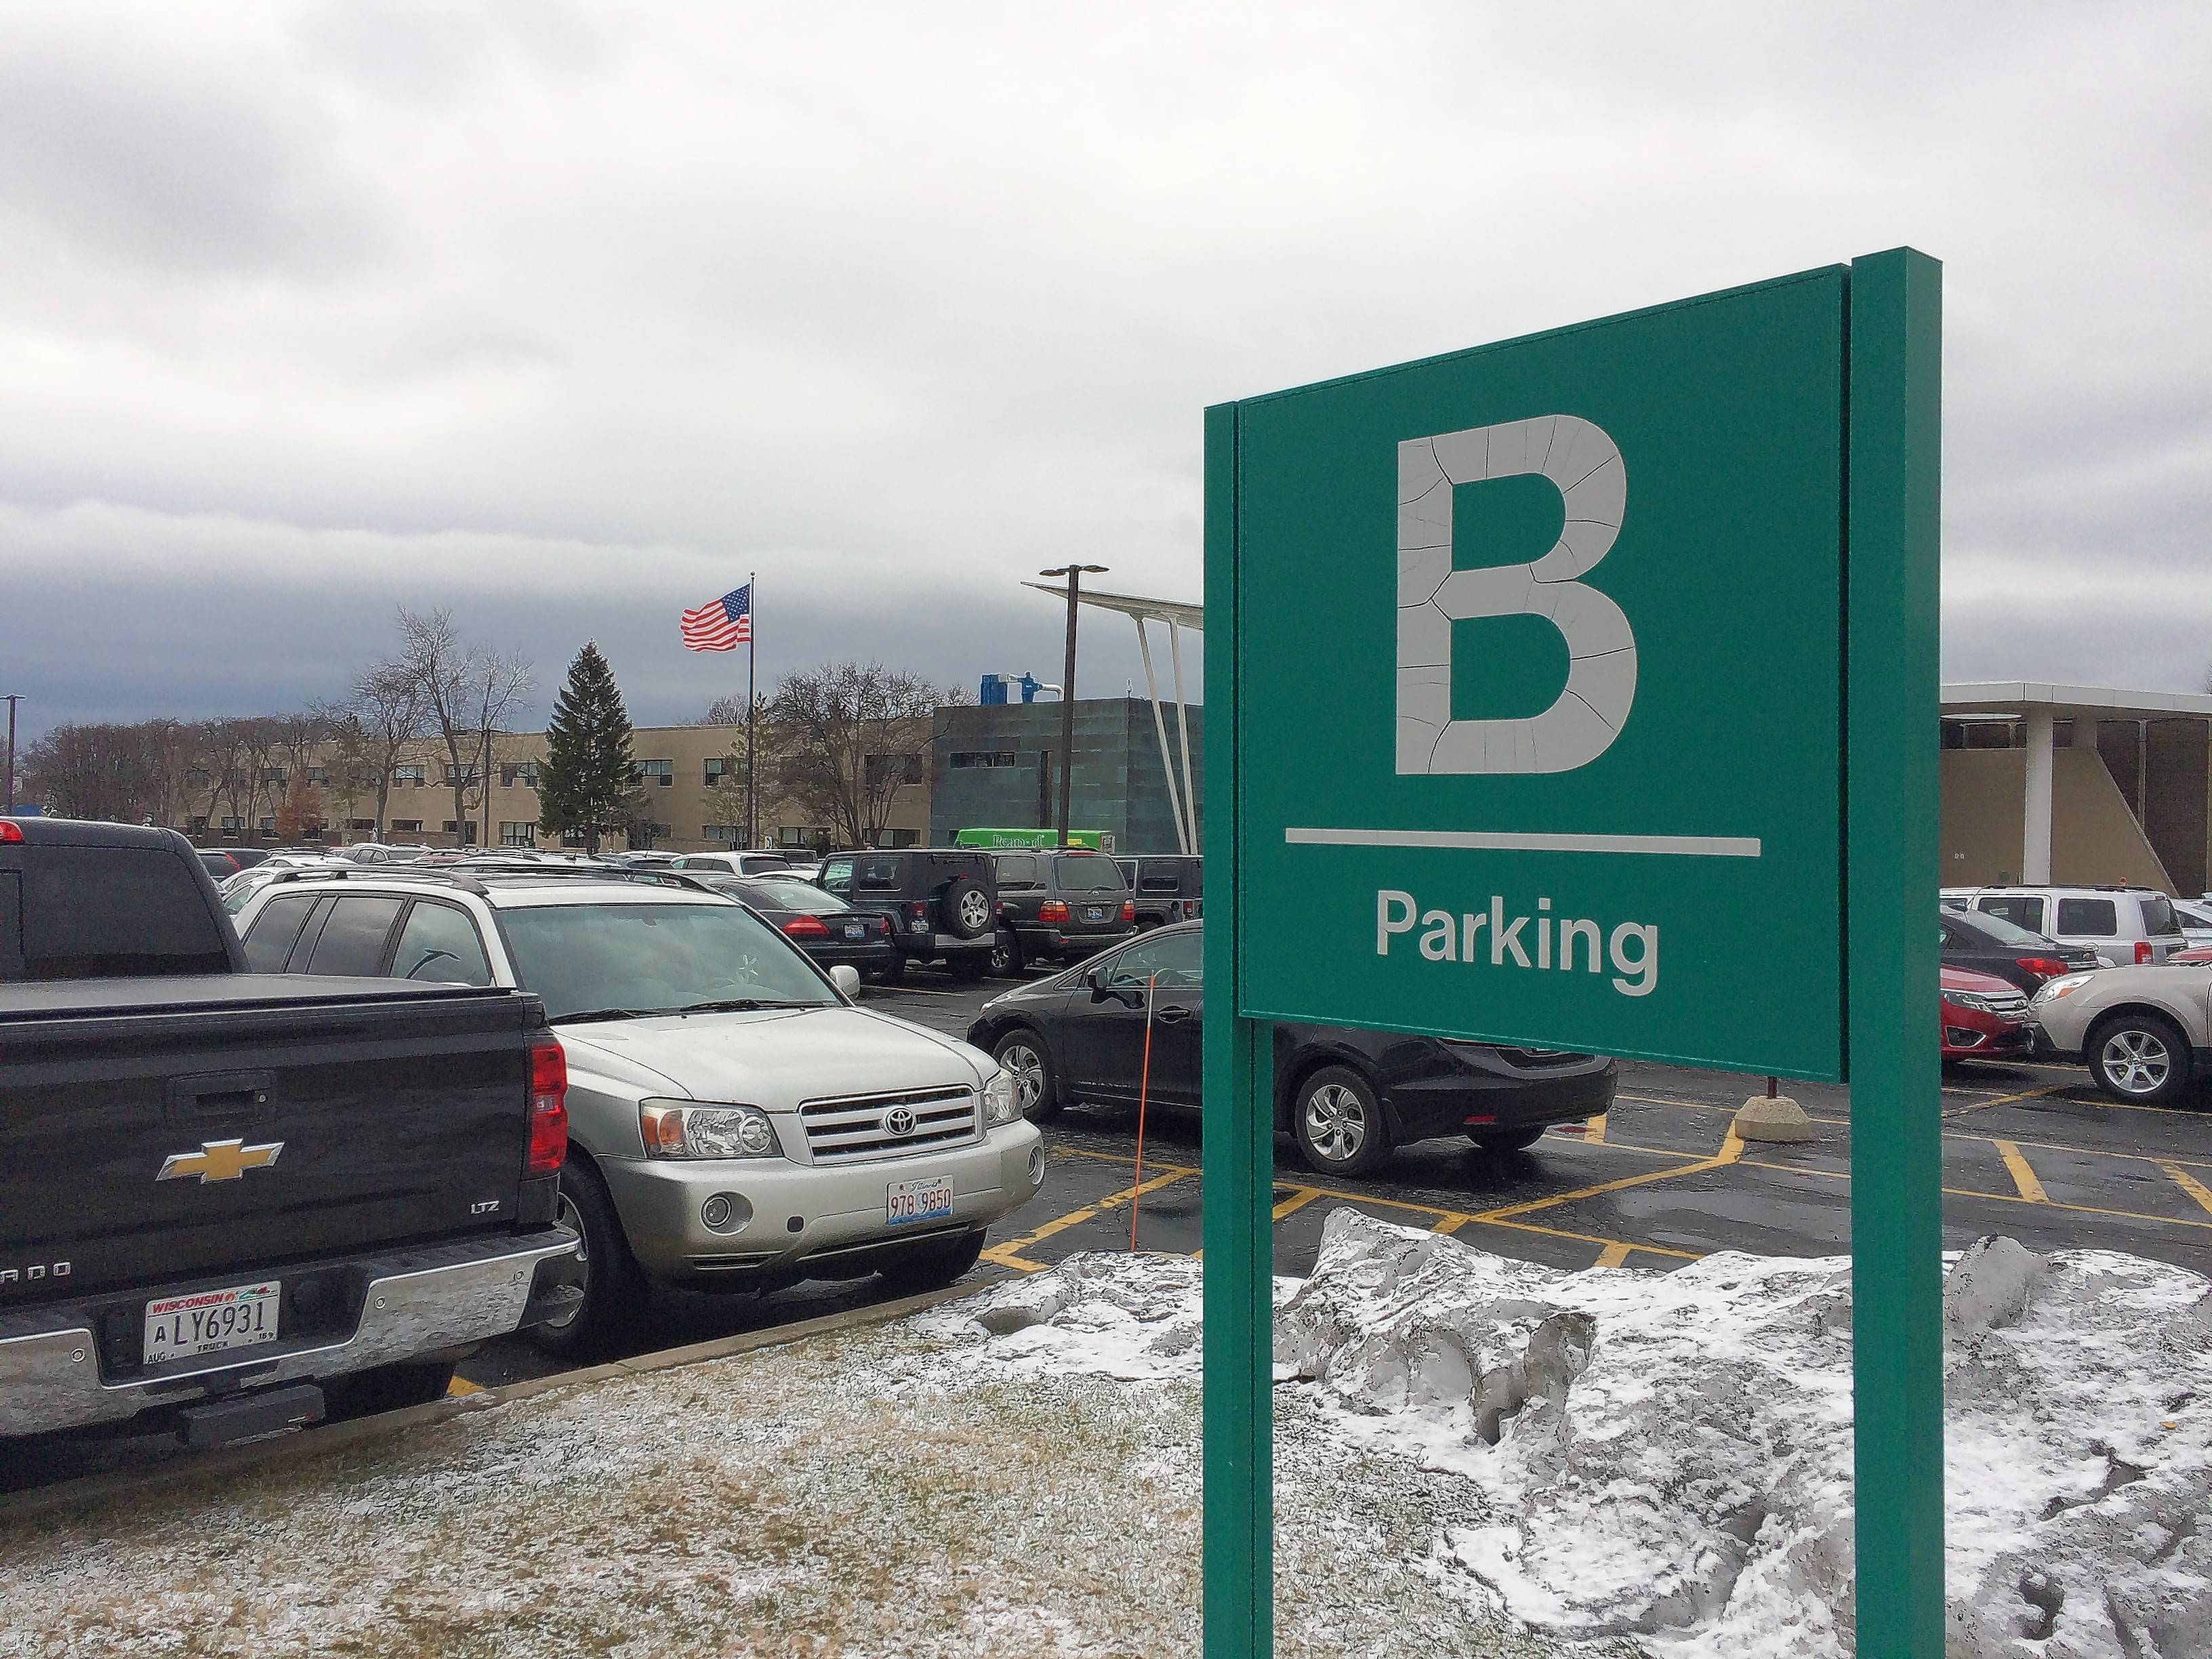 By Russell Lissau/rlissau@dailyherald.com Stevenson High School's B parking lot will be repaved as part of a $5.1 million construction package scheduled for this summer.